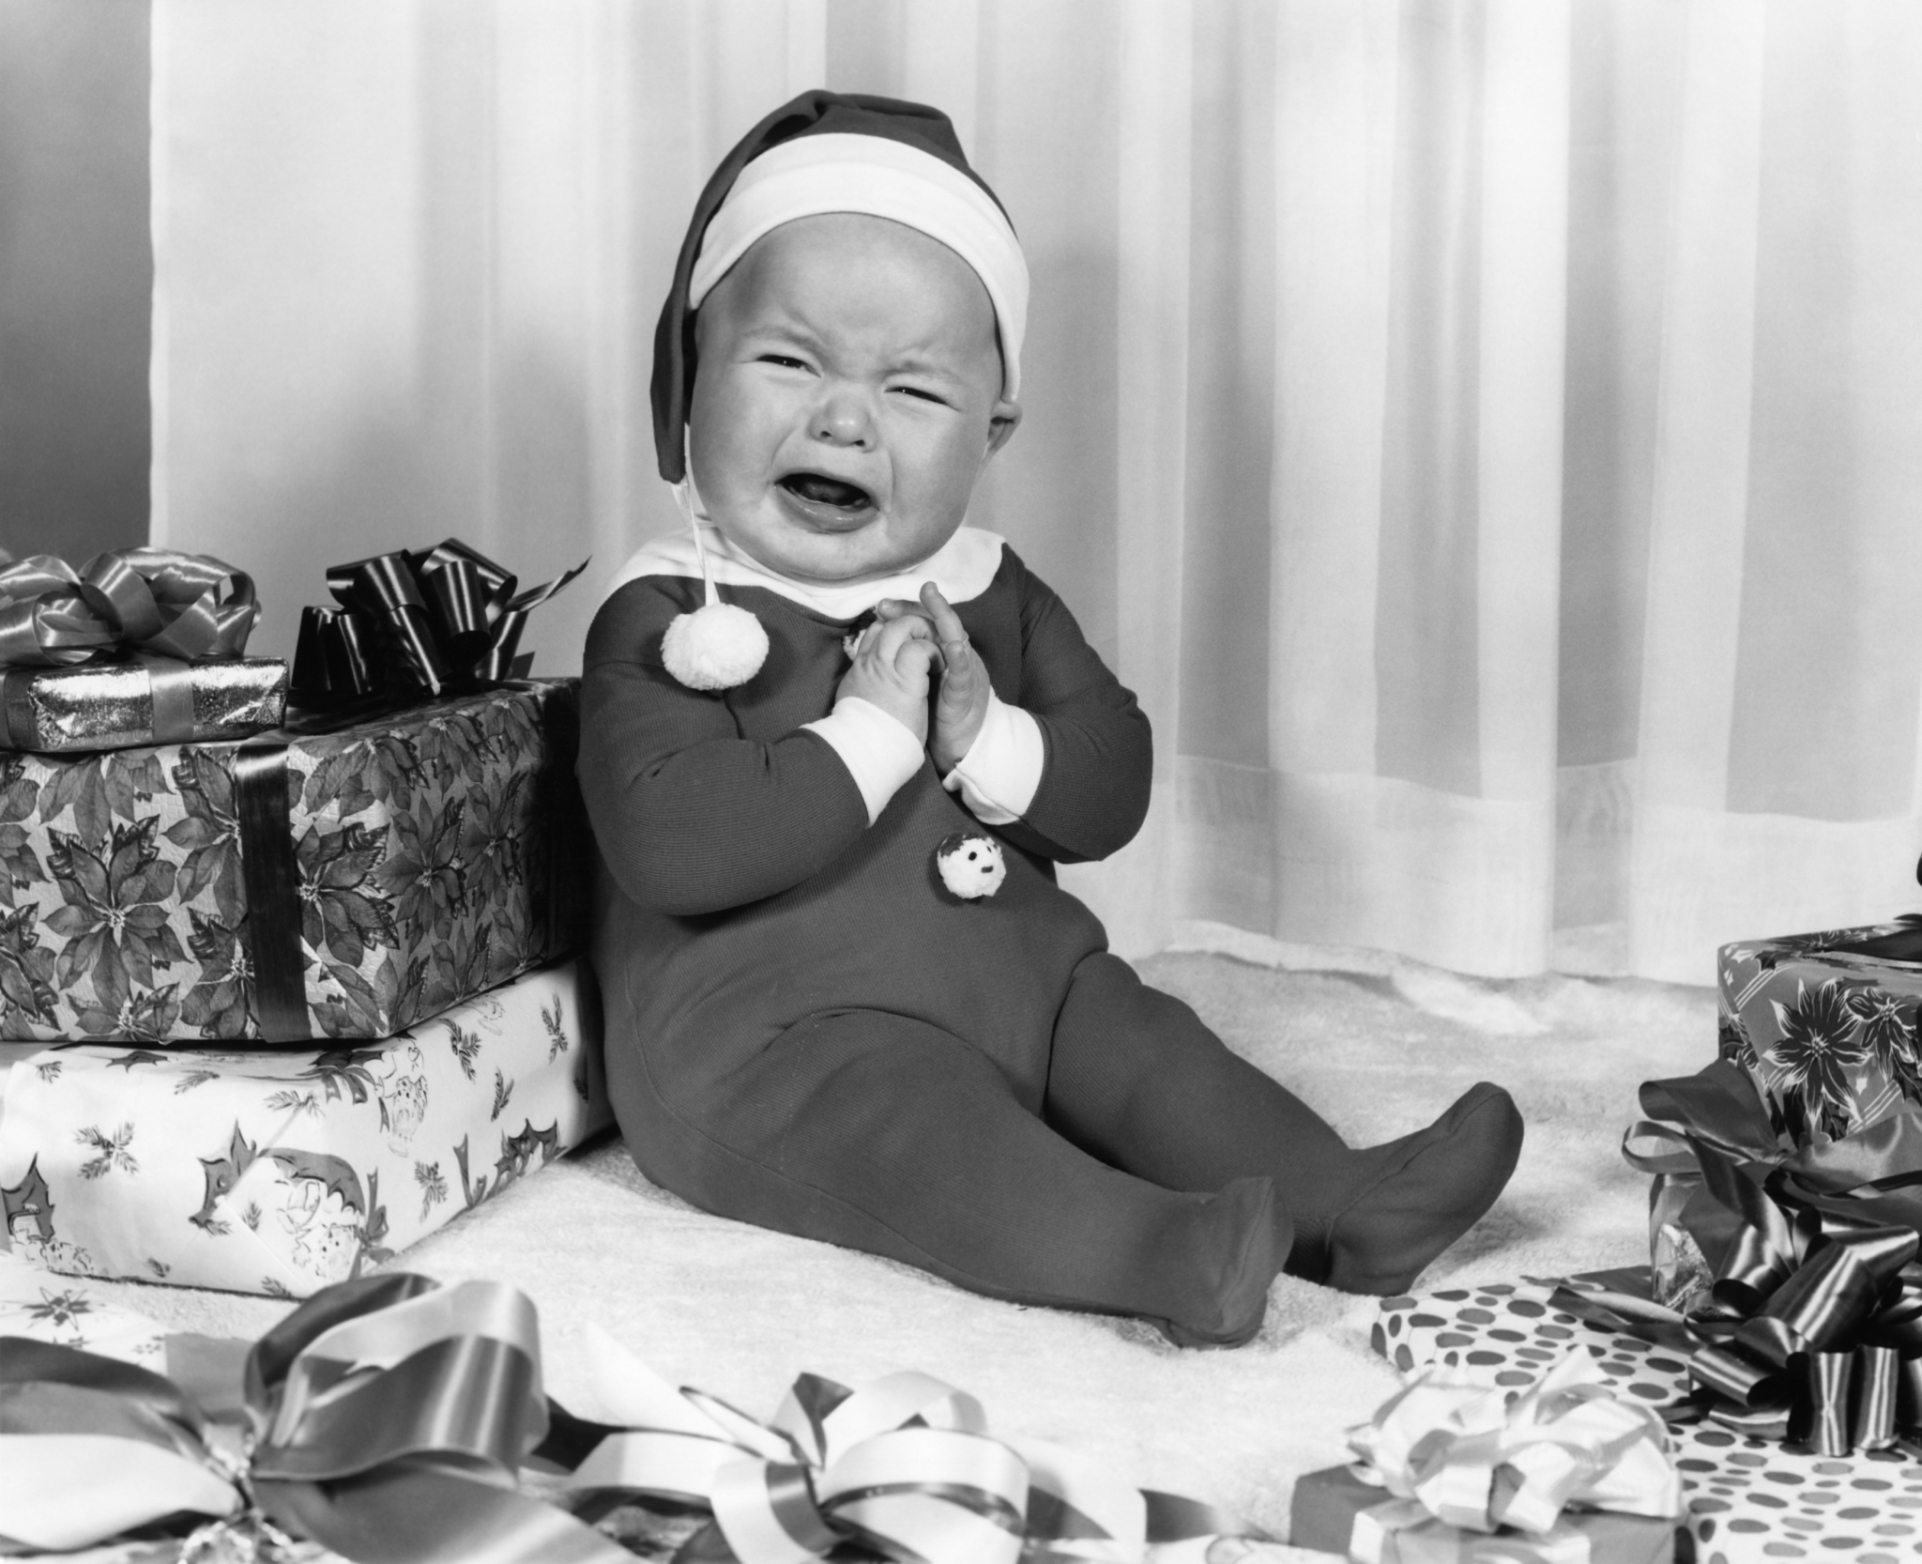 15 things we all secretly dread about Christmas